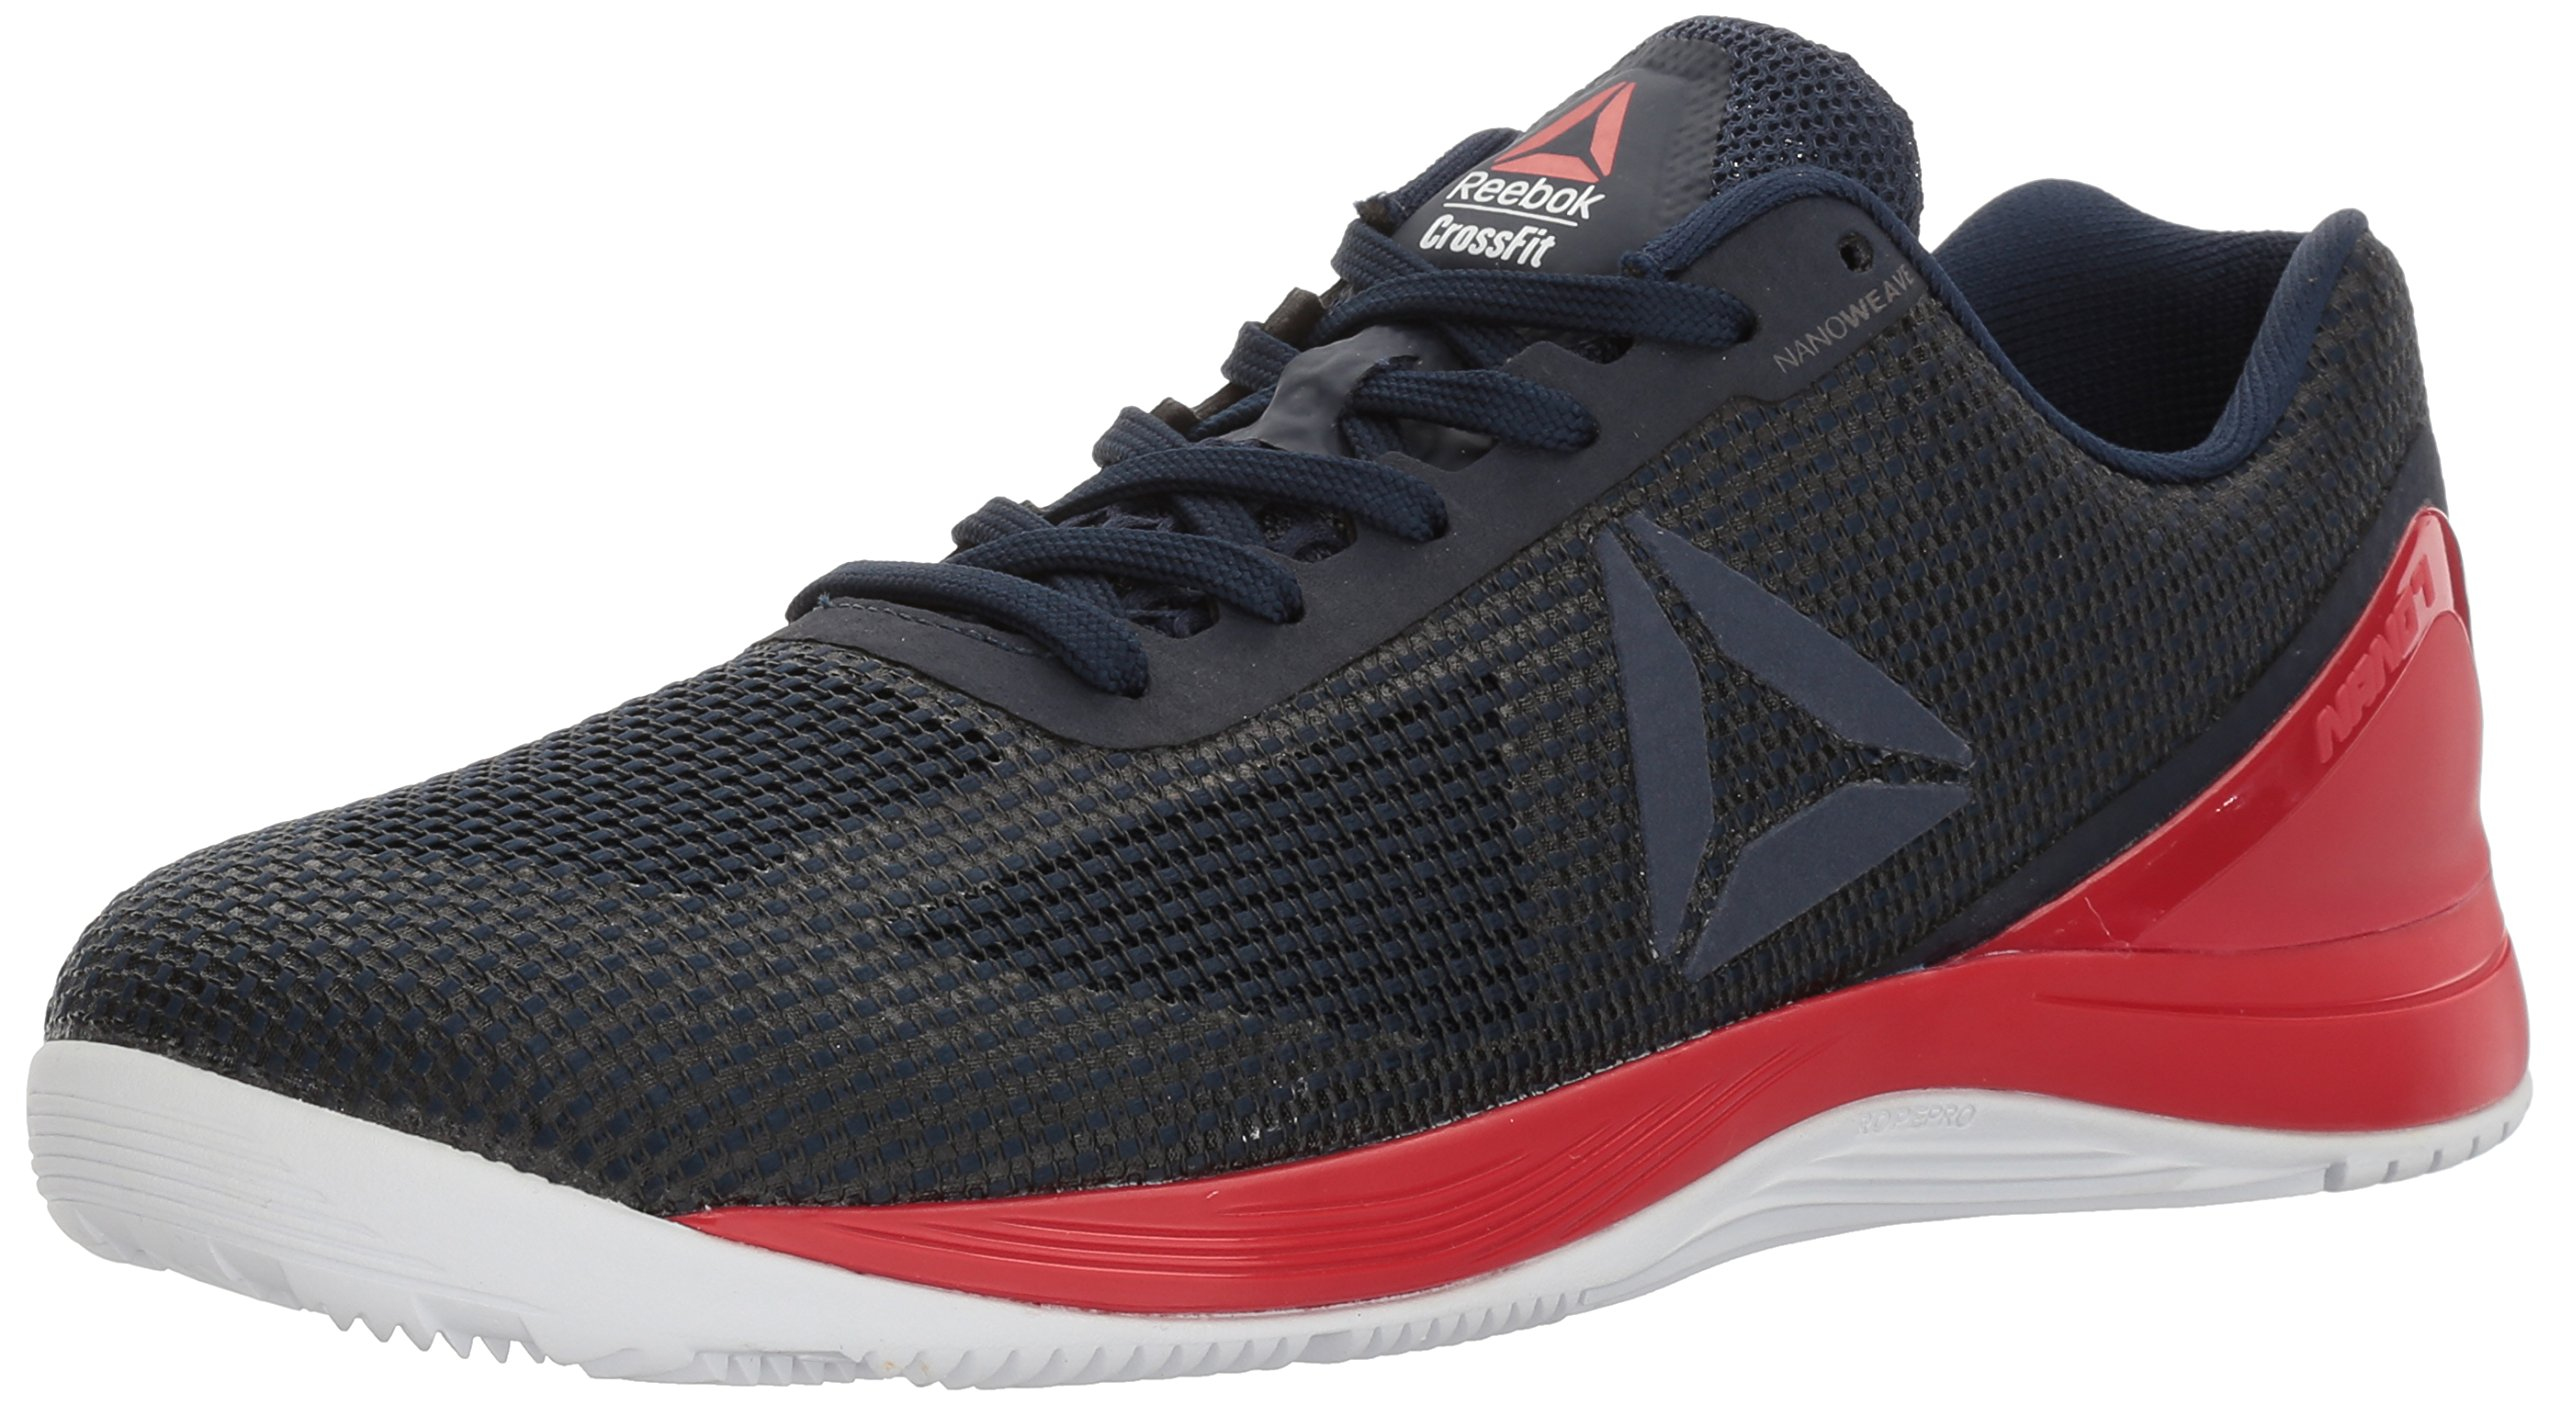 f8ad59bdc4aa Galleon - Reebok Men s Crossfit Nano 7.0 Cross-Trainer Shoe ...